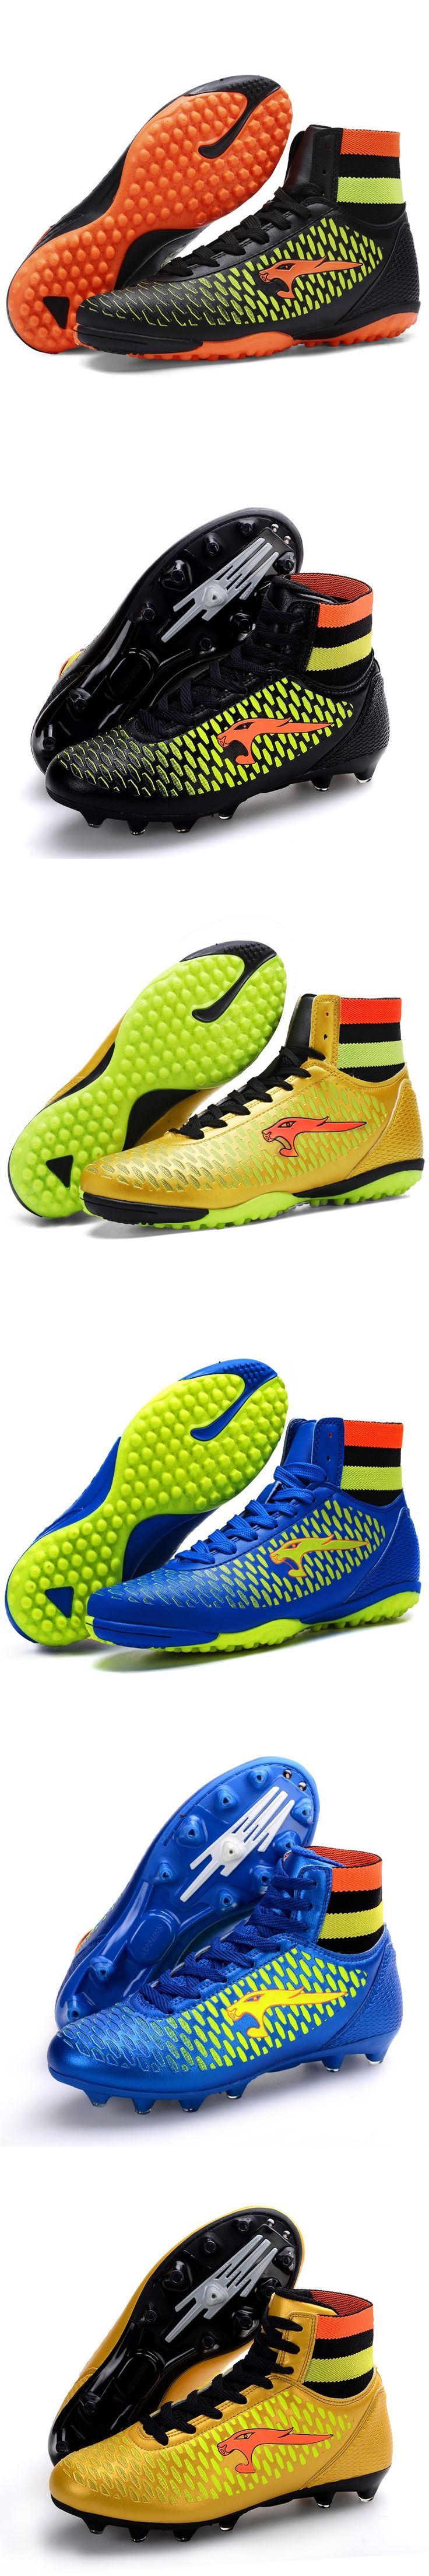 New Mens/Kids Soccer Shoes AG/TF Professional Adults Football Boots High Ankle Children Cleats Sneakers Outdoor Athletic Trainer